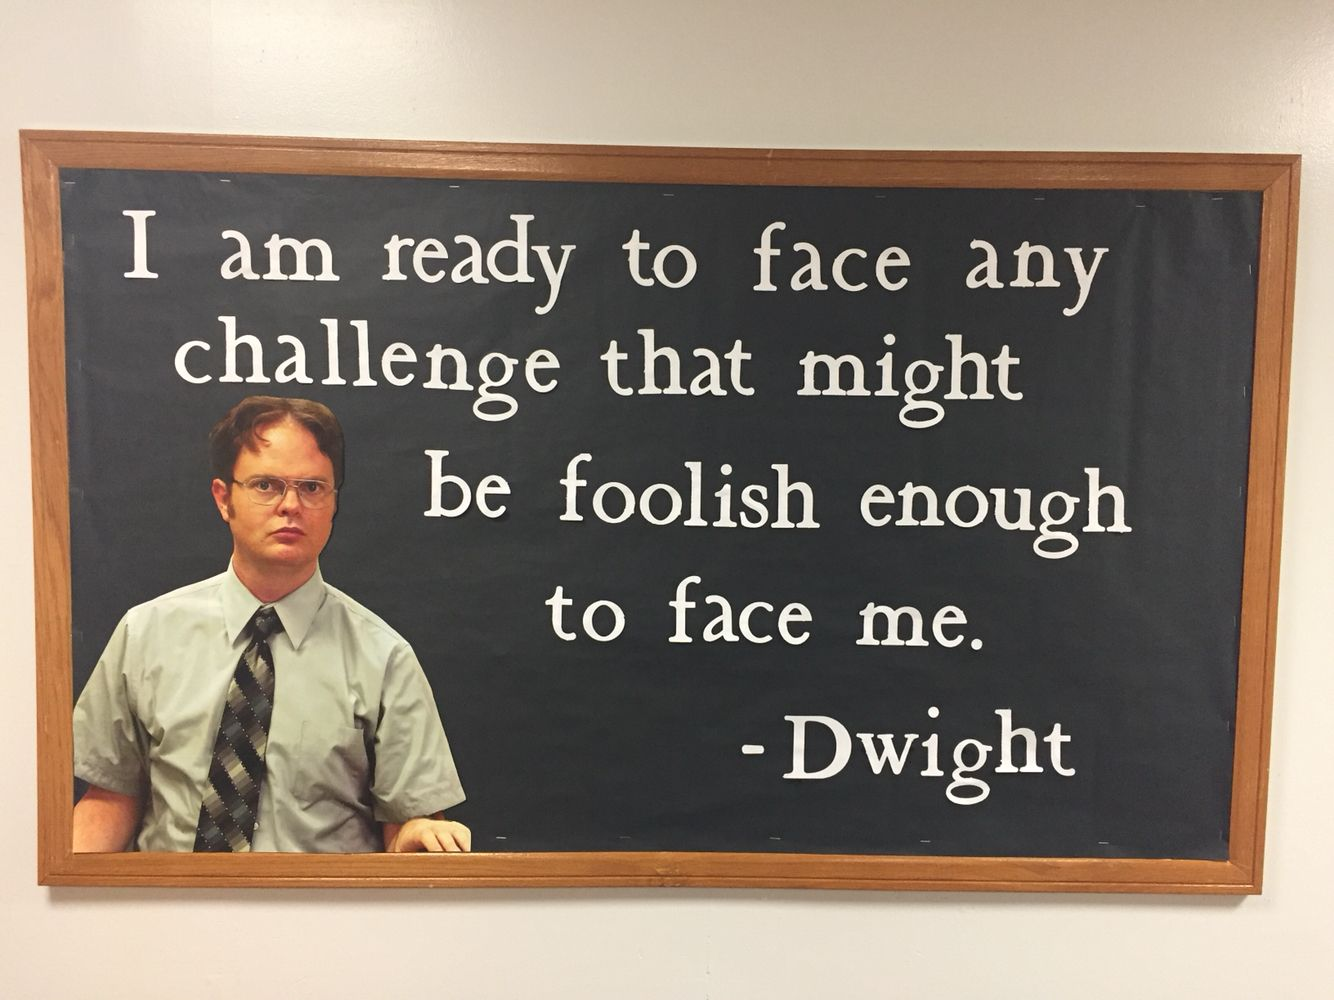 Old Office Dwight Quote Ra Bulletin Board Idea Office Dwight Quote Ra Bulletin Board Idea Ra Ideas School Senior Graduation Quotes School Senior Quotes Disney